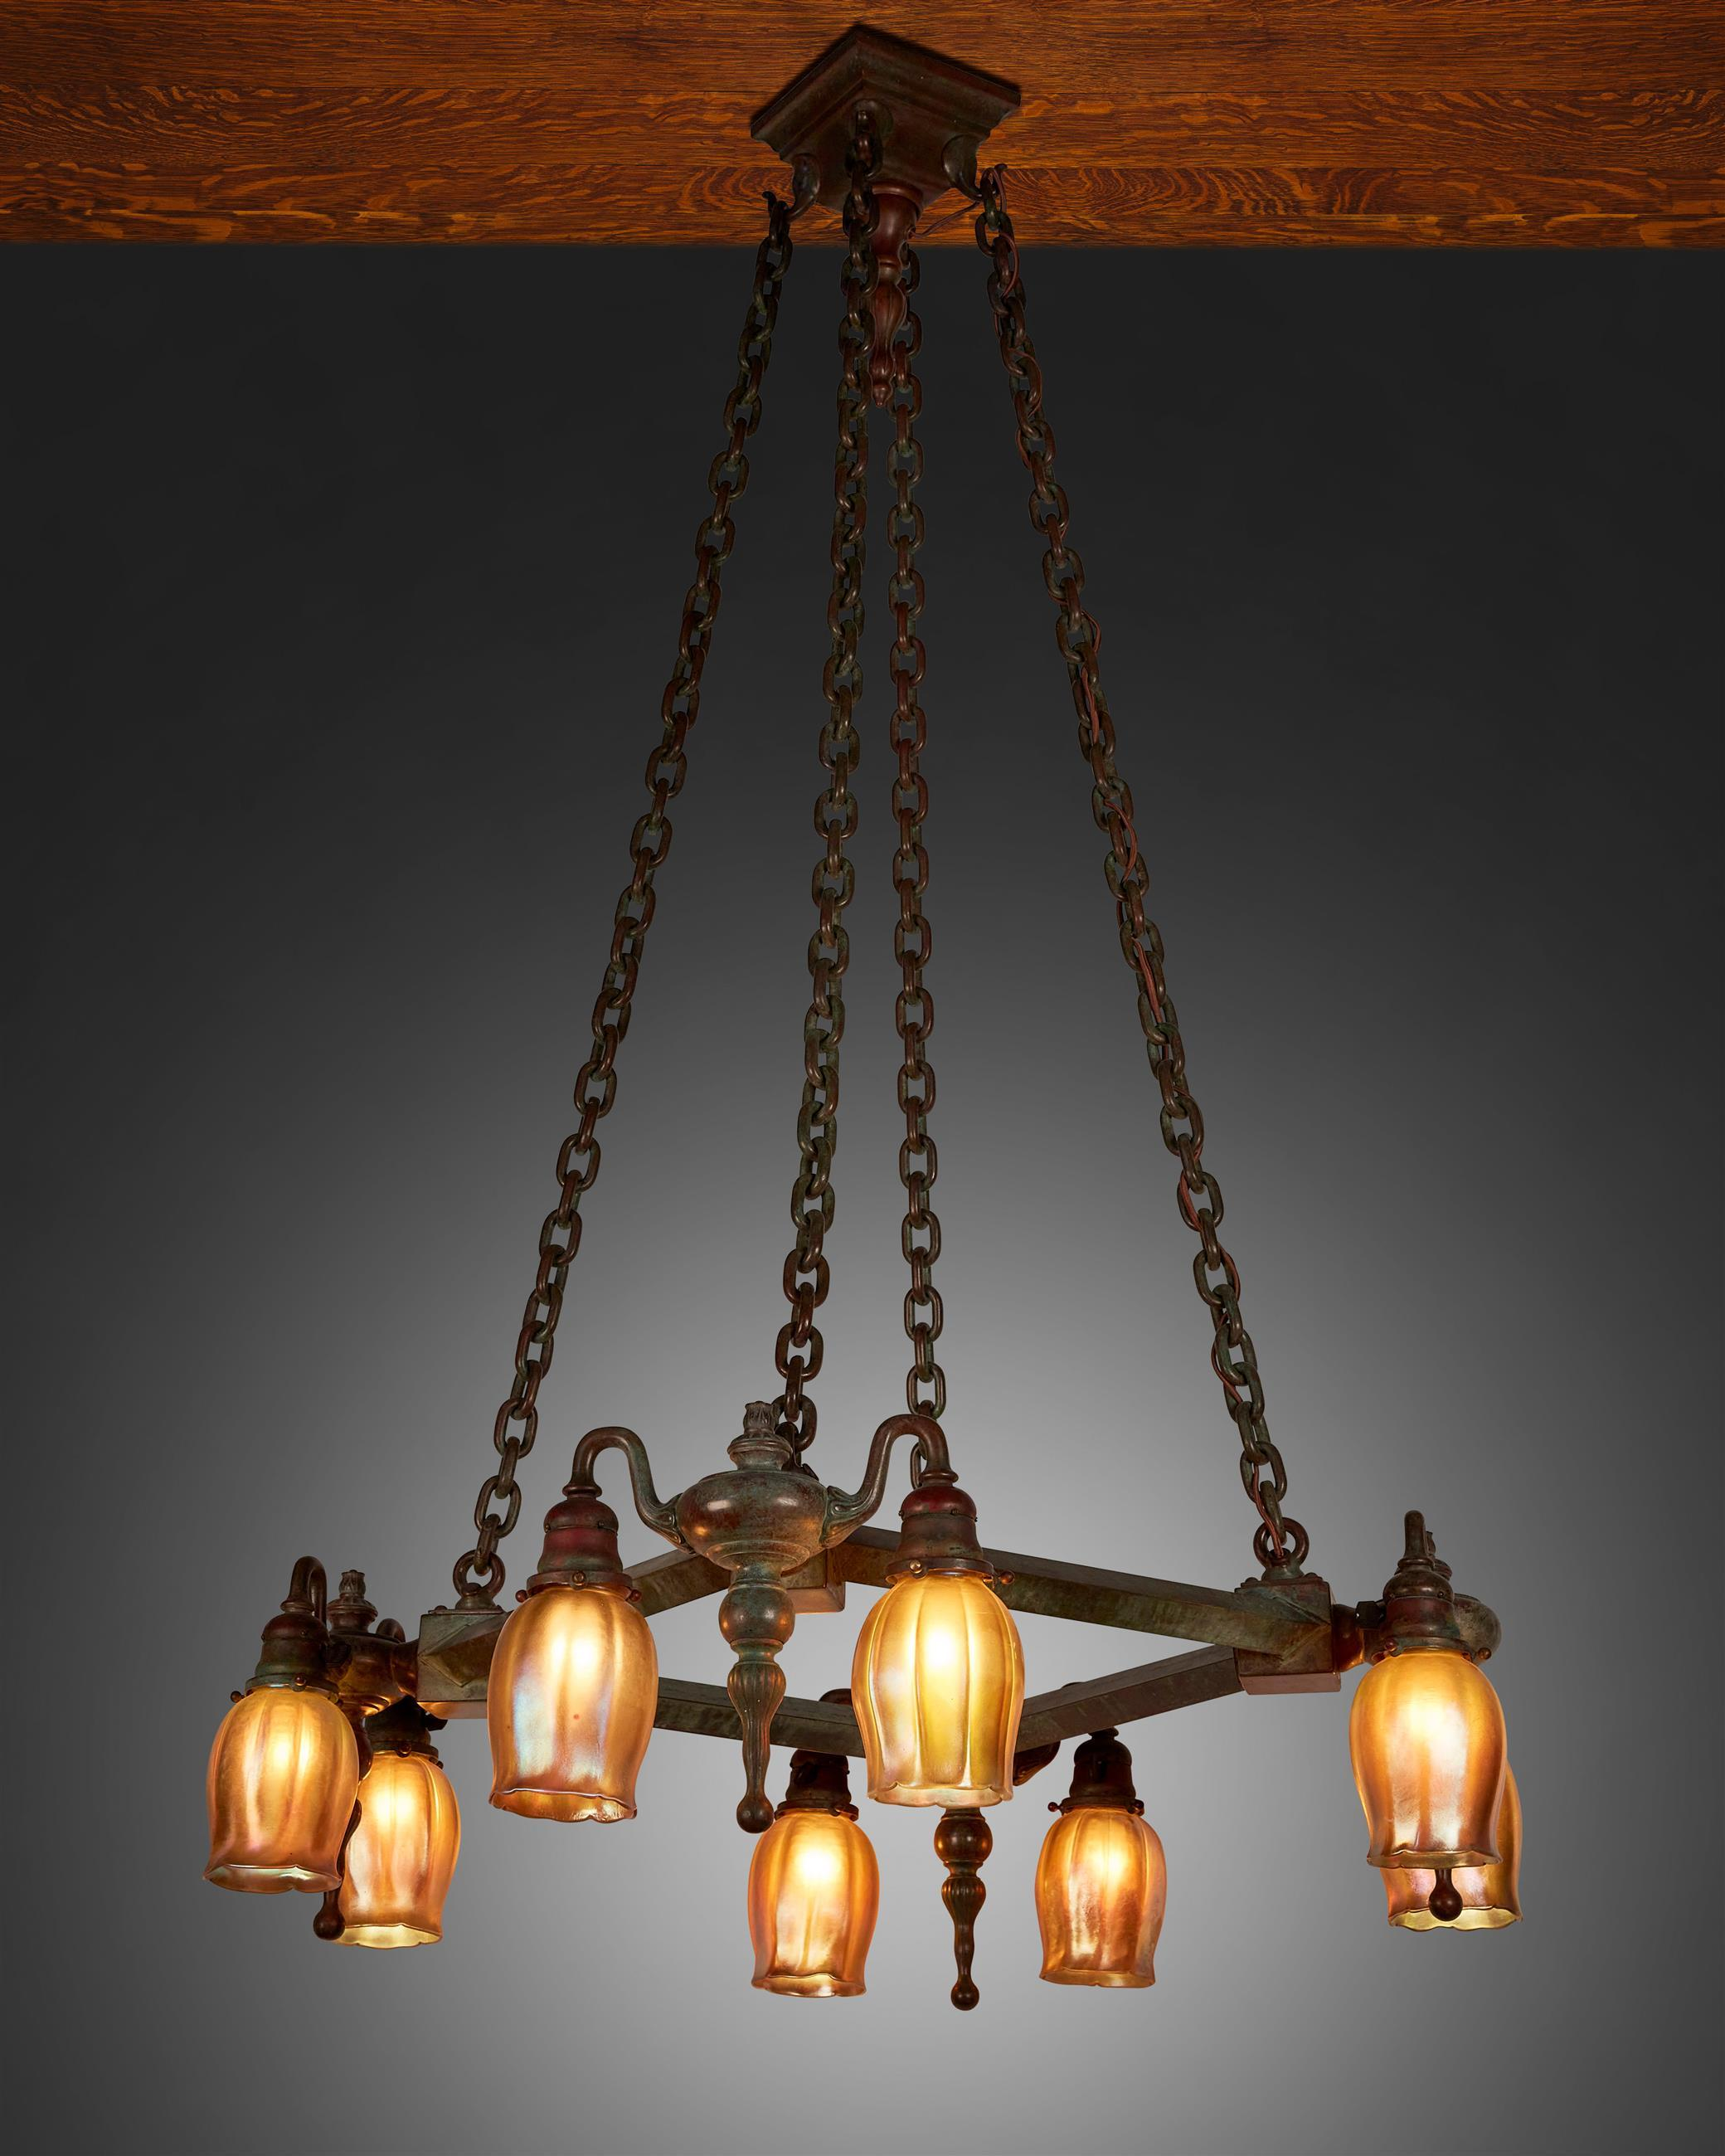 A Tiffany Studios Favrile glass and bronze chandelier